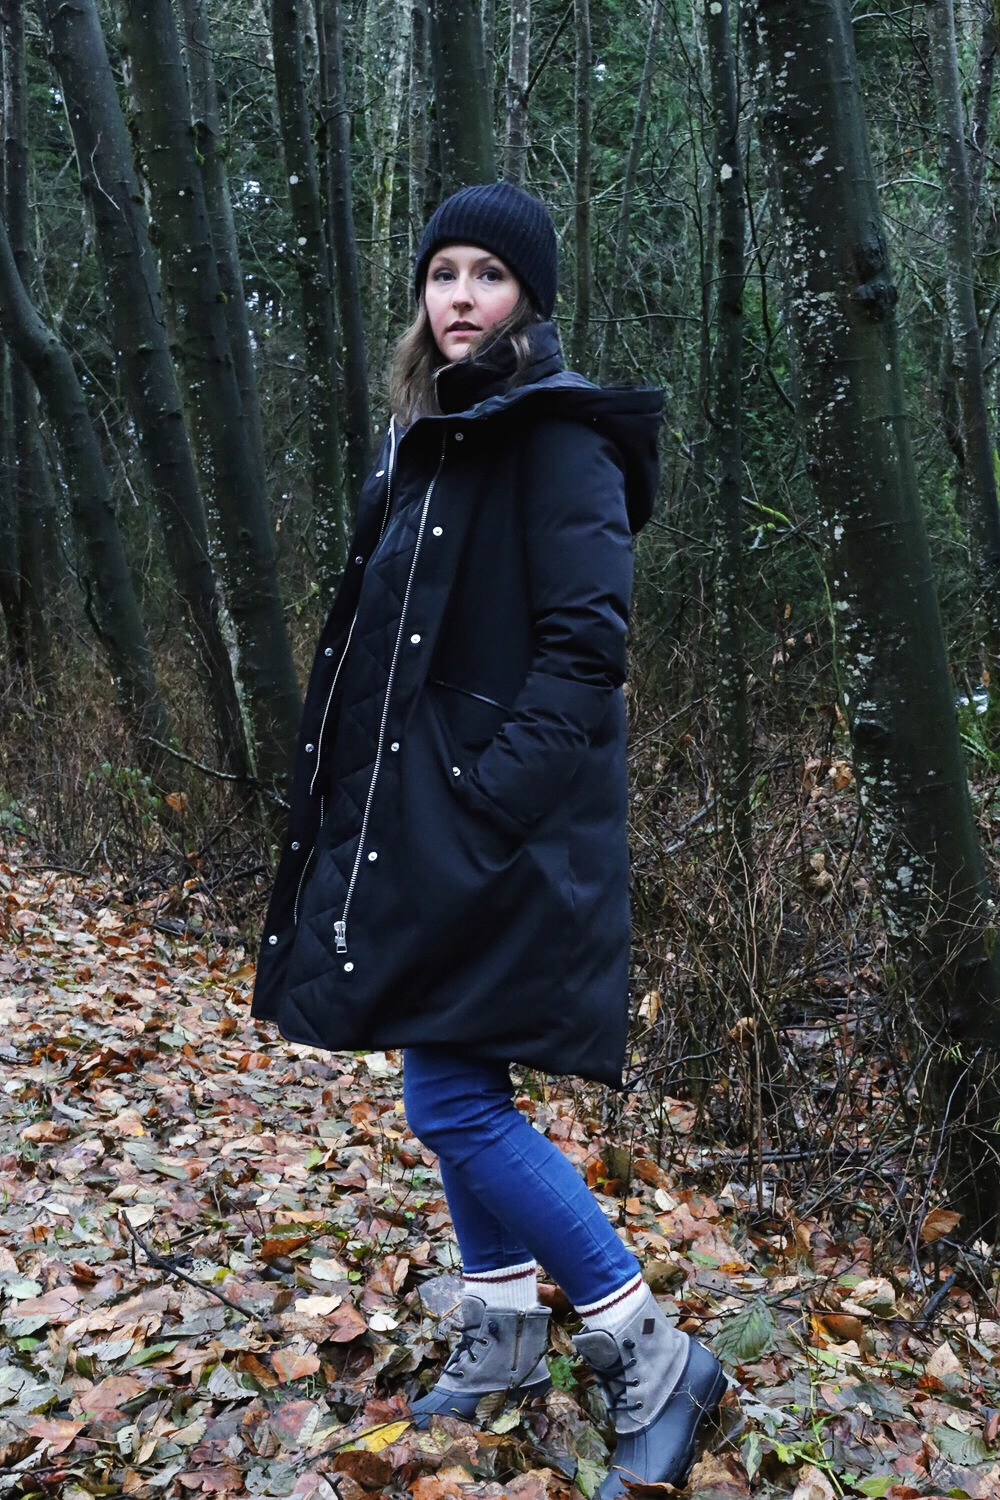 Winter street style: oversized black parka, waterproof rain boots, and a black toque.